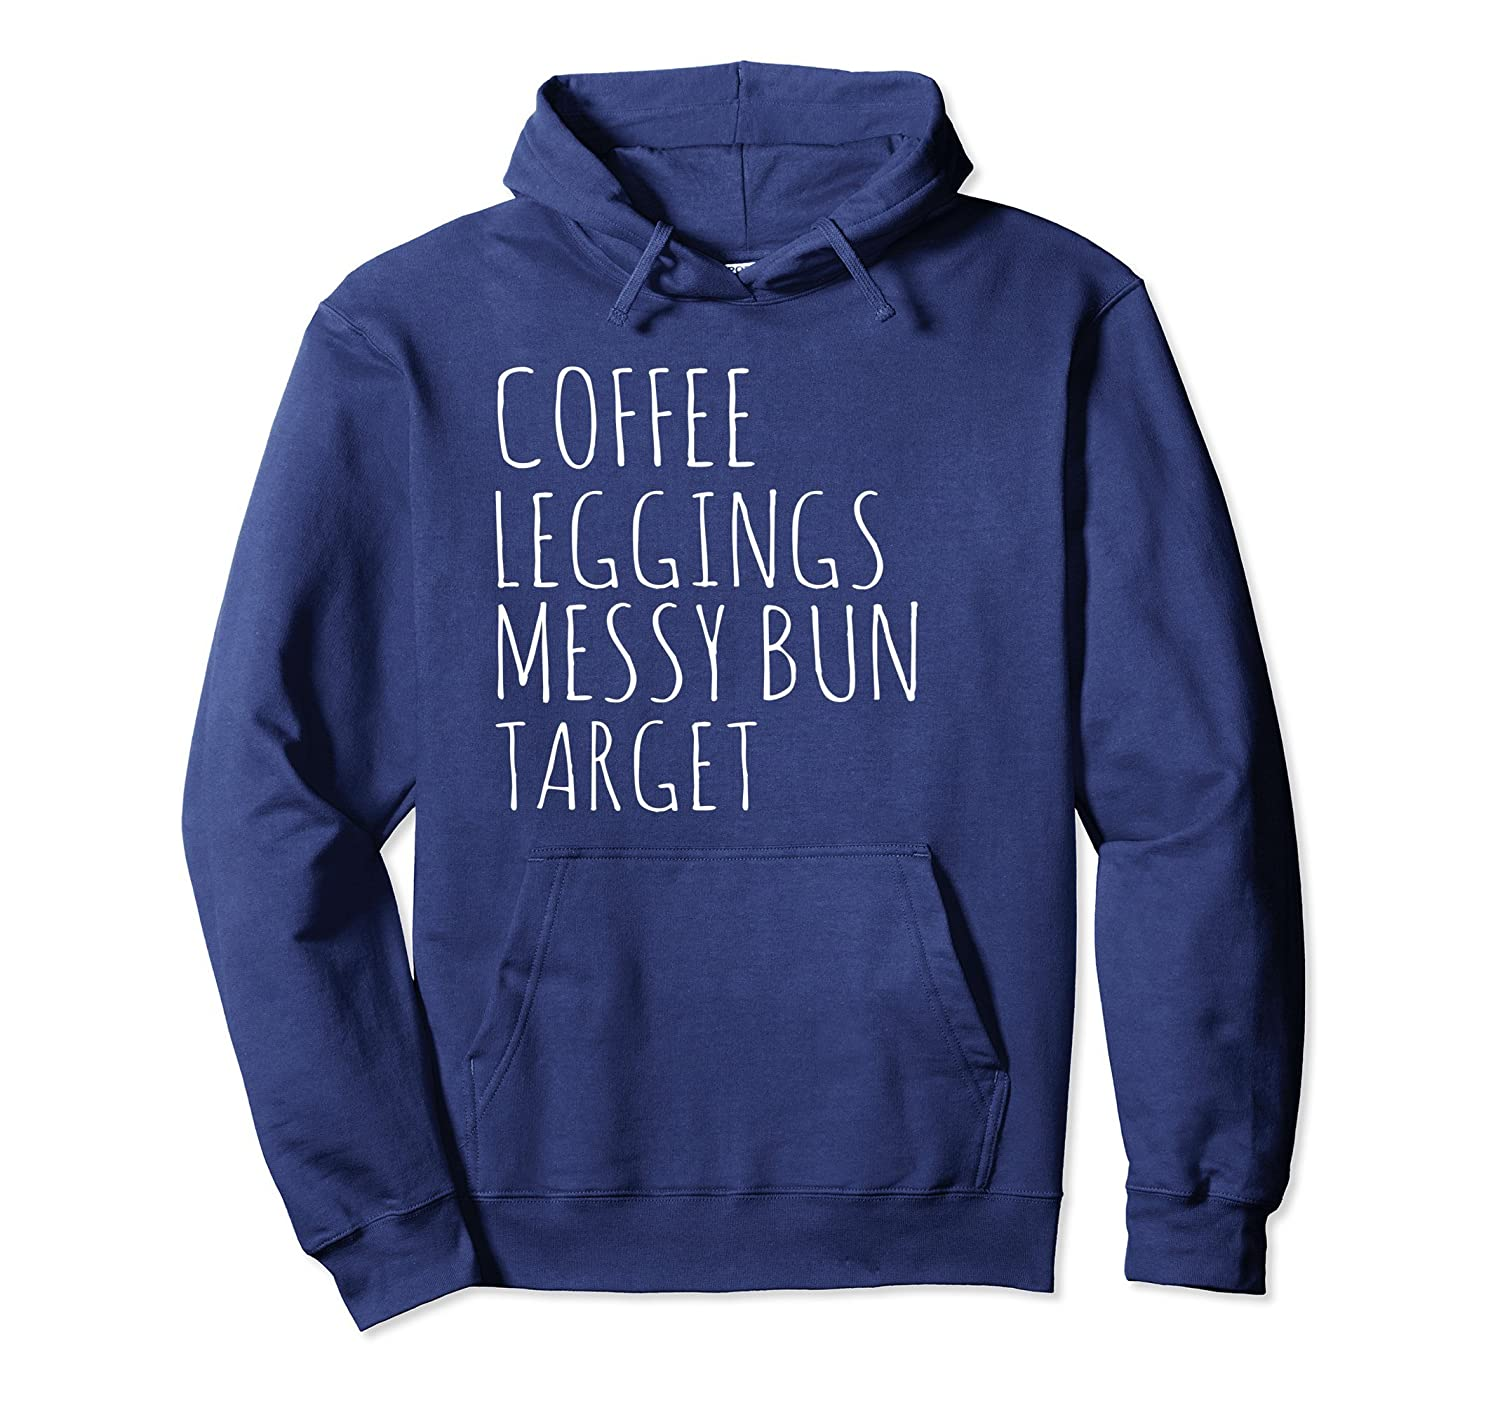 Coffee Leggings Messy Bun Target Hoodie | Fun Cool Mom Gift-mt